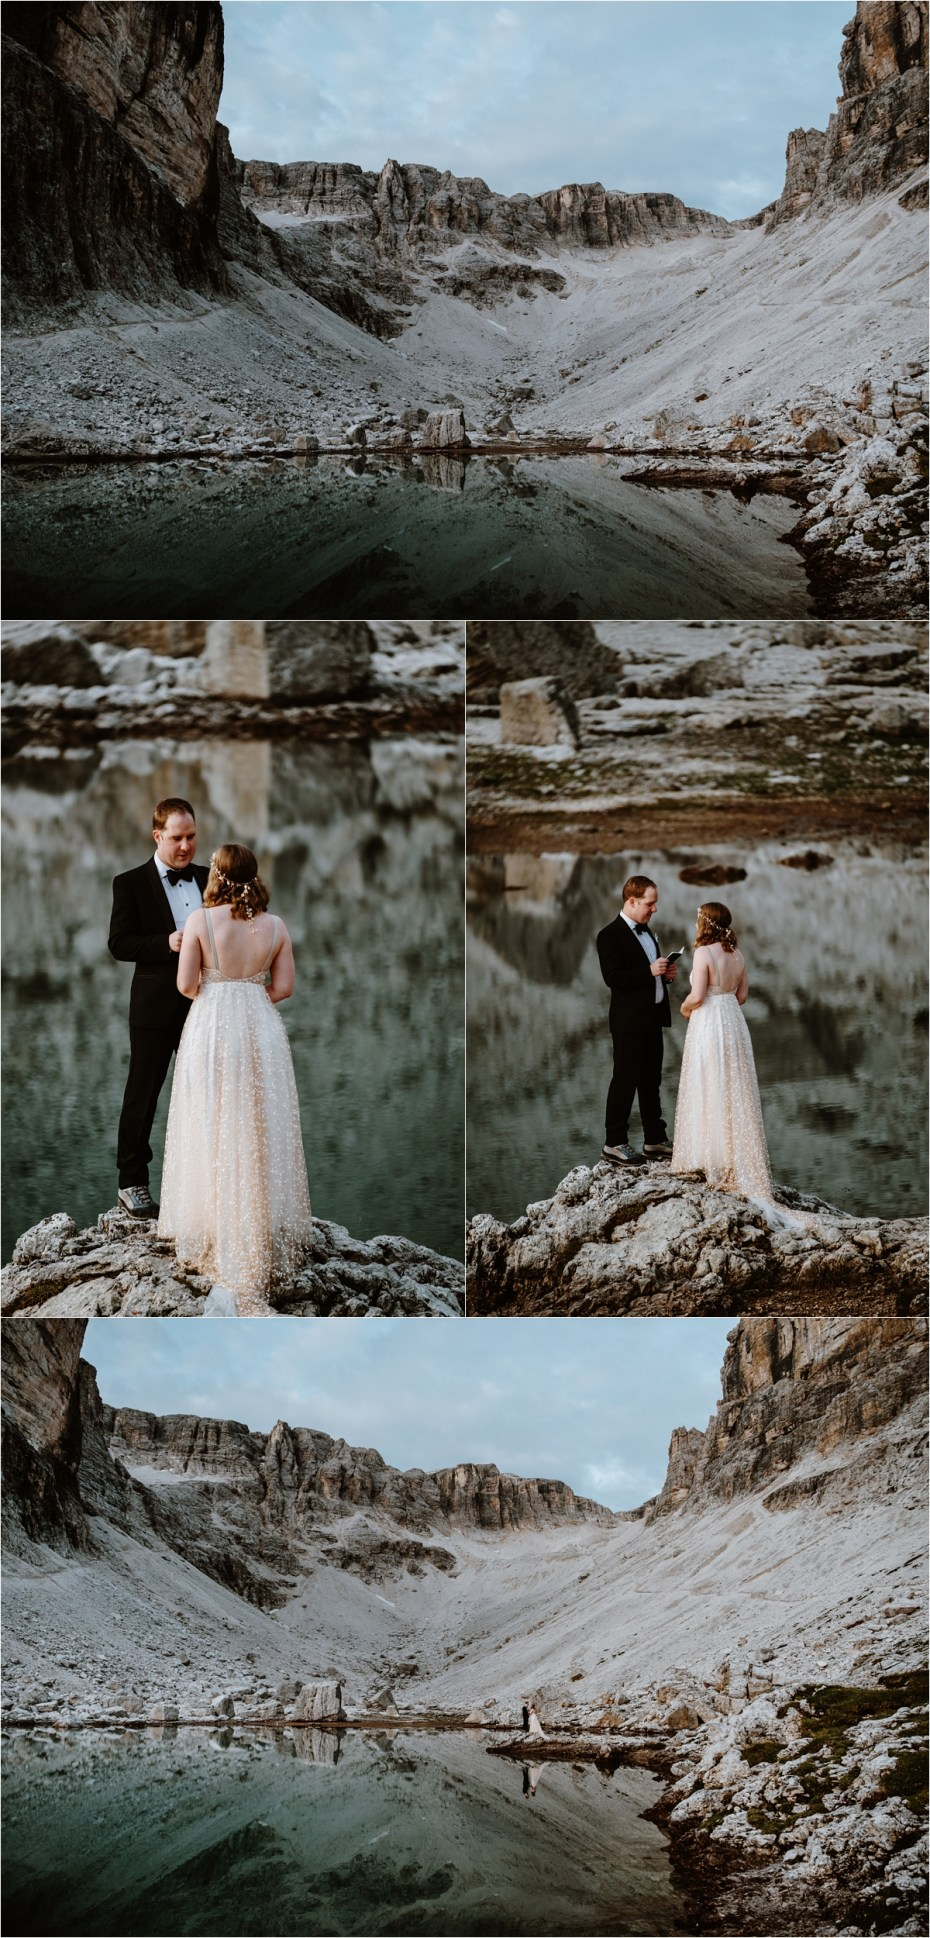 Emma and Martin say their wedding vows at the lake at Pisciadu. Photo by Wild Connections Photography